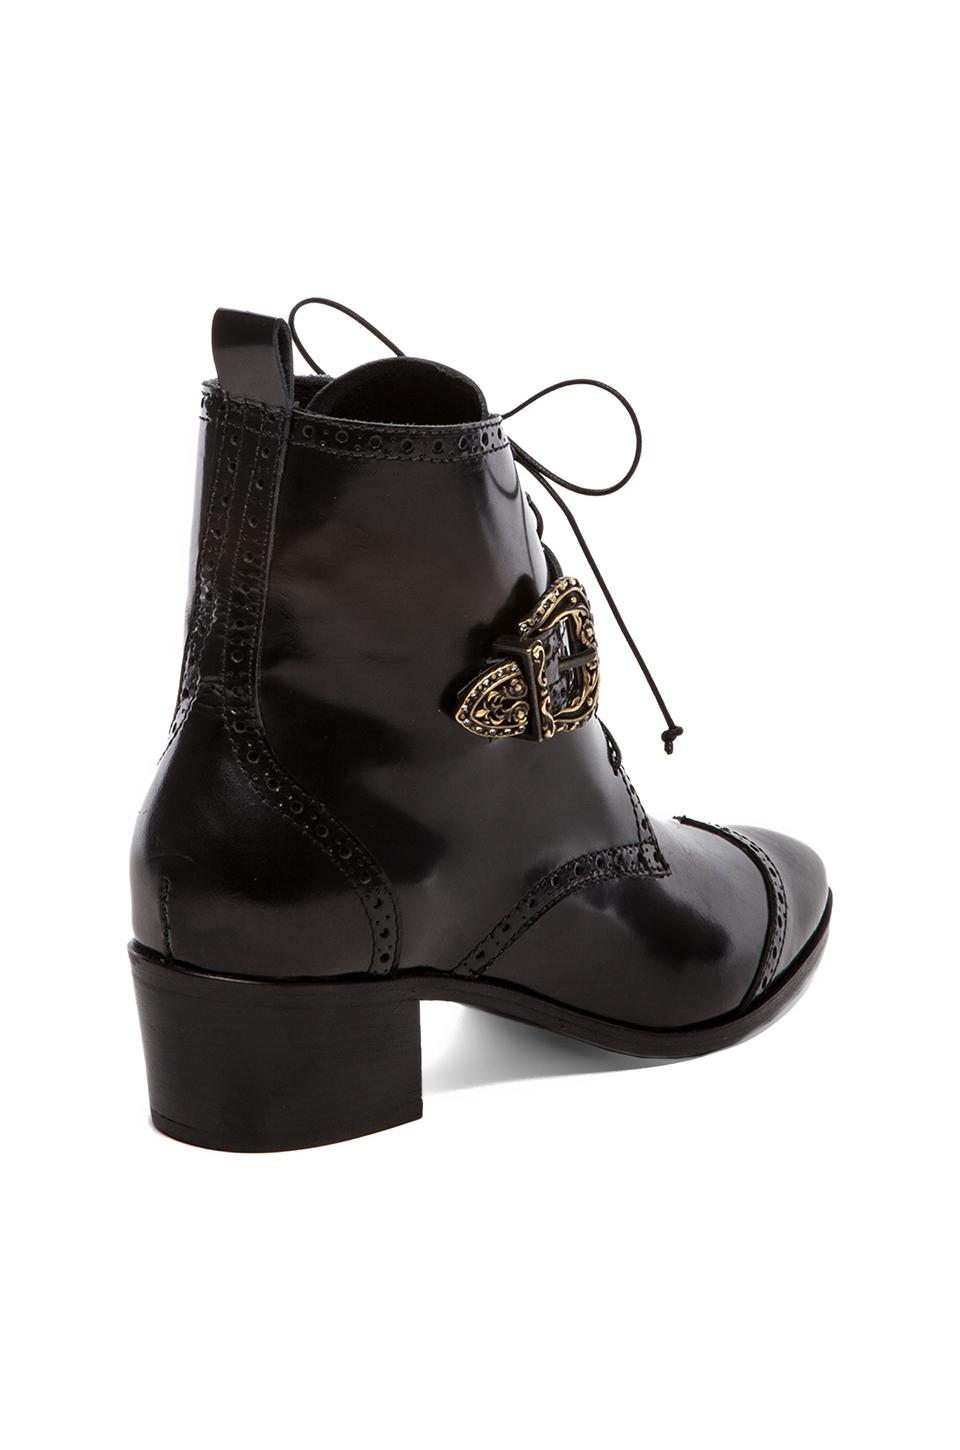 Modern vice collection frankie bootie in black from revolveclothing.com